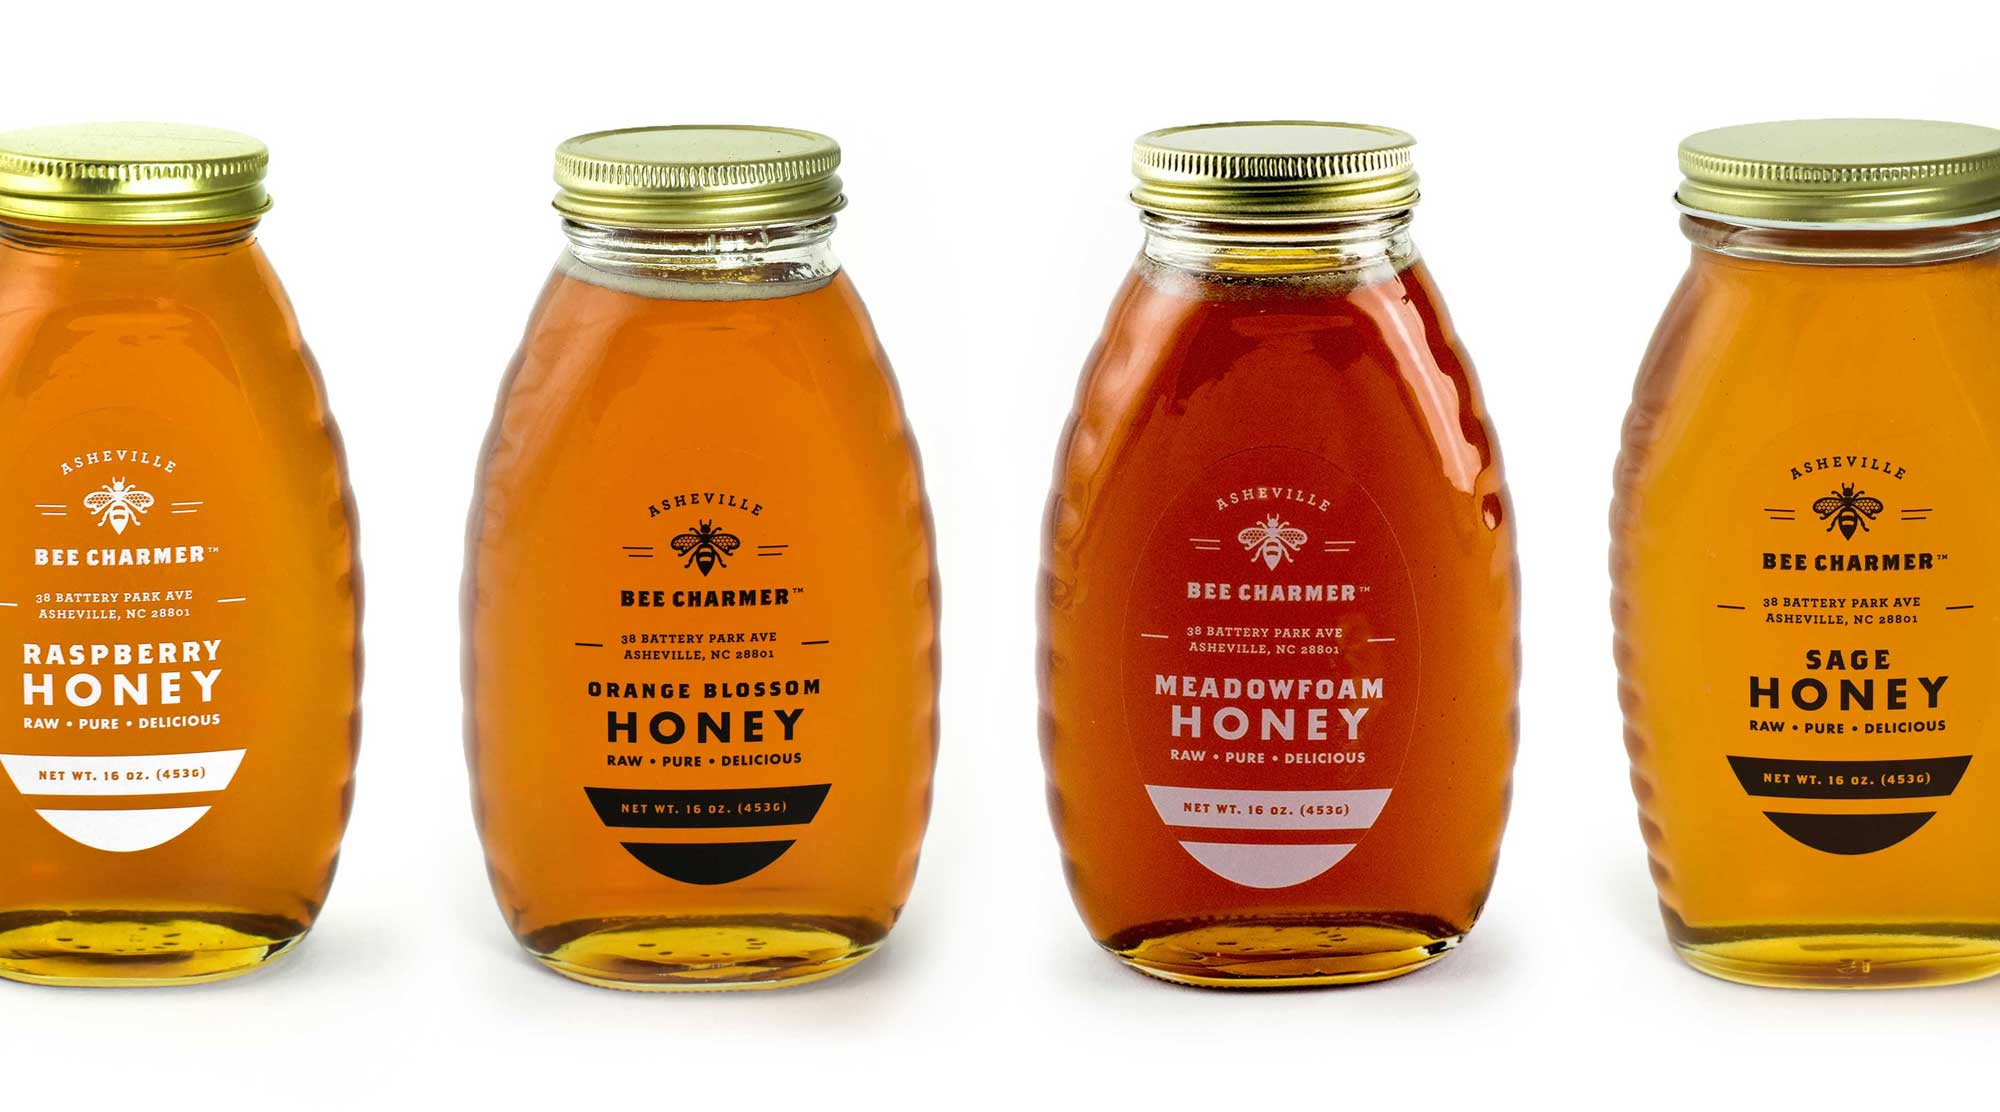 Asheville Bee Charmer Honey Labels